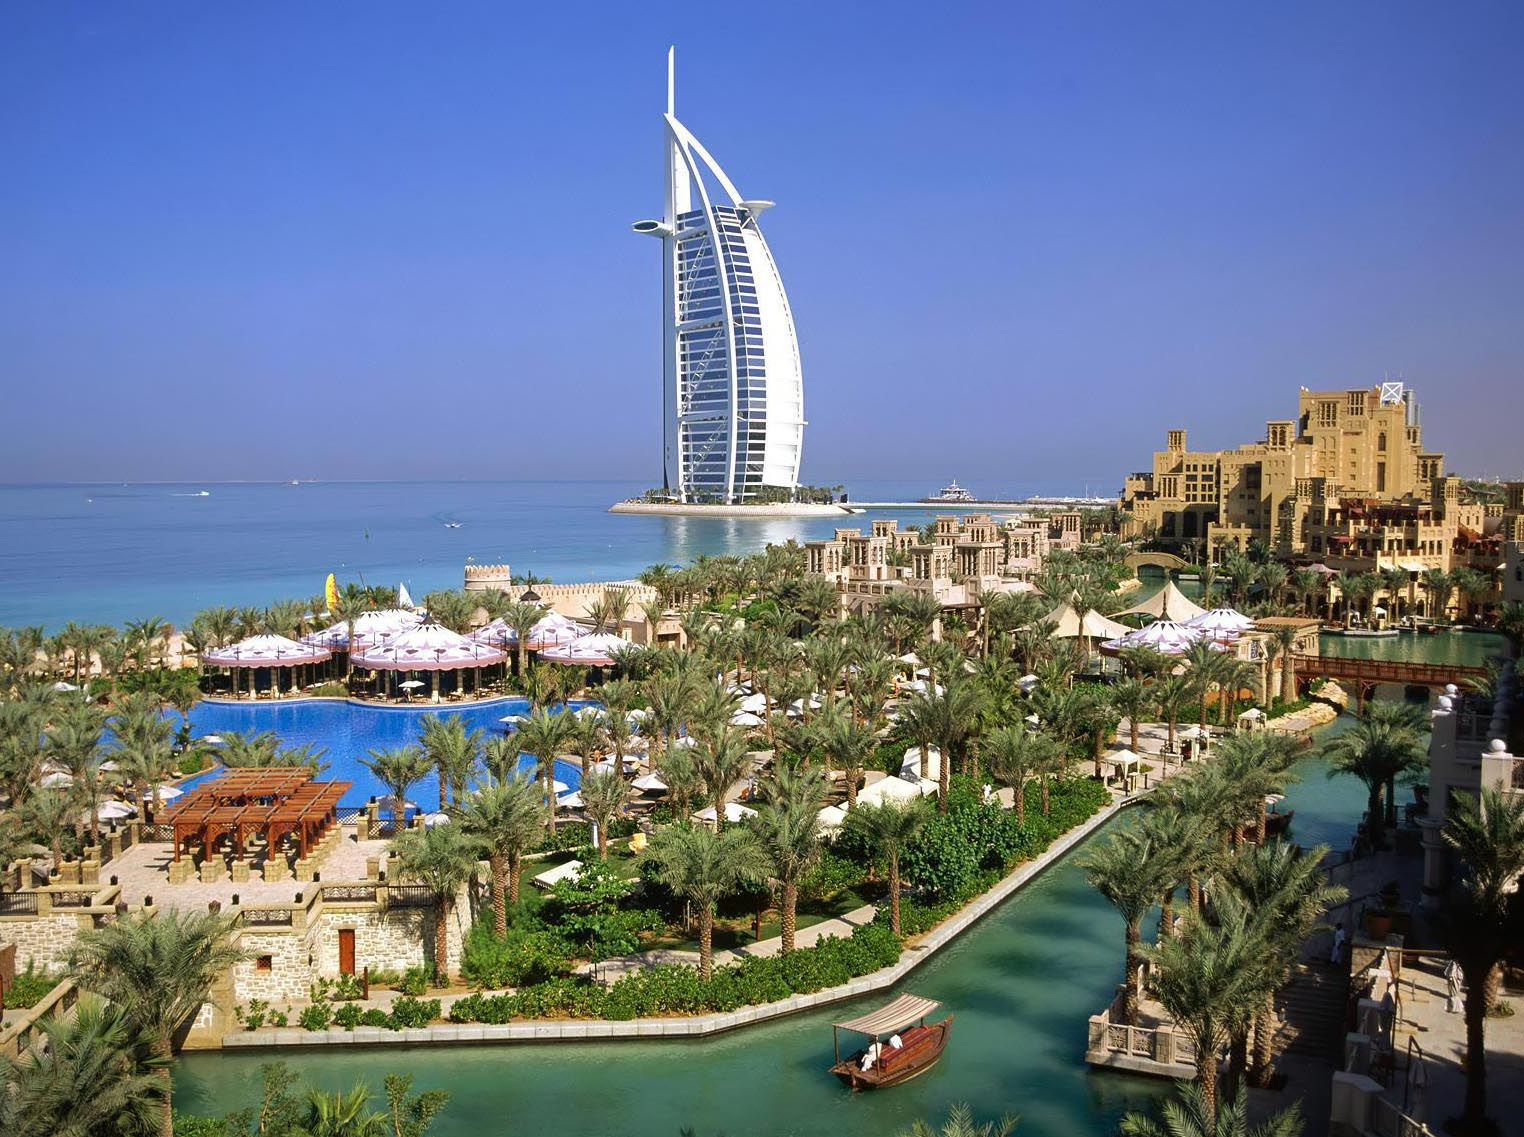 Accomadation in the world burj al arab hotel in dubai for Burj arab dubai